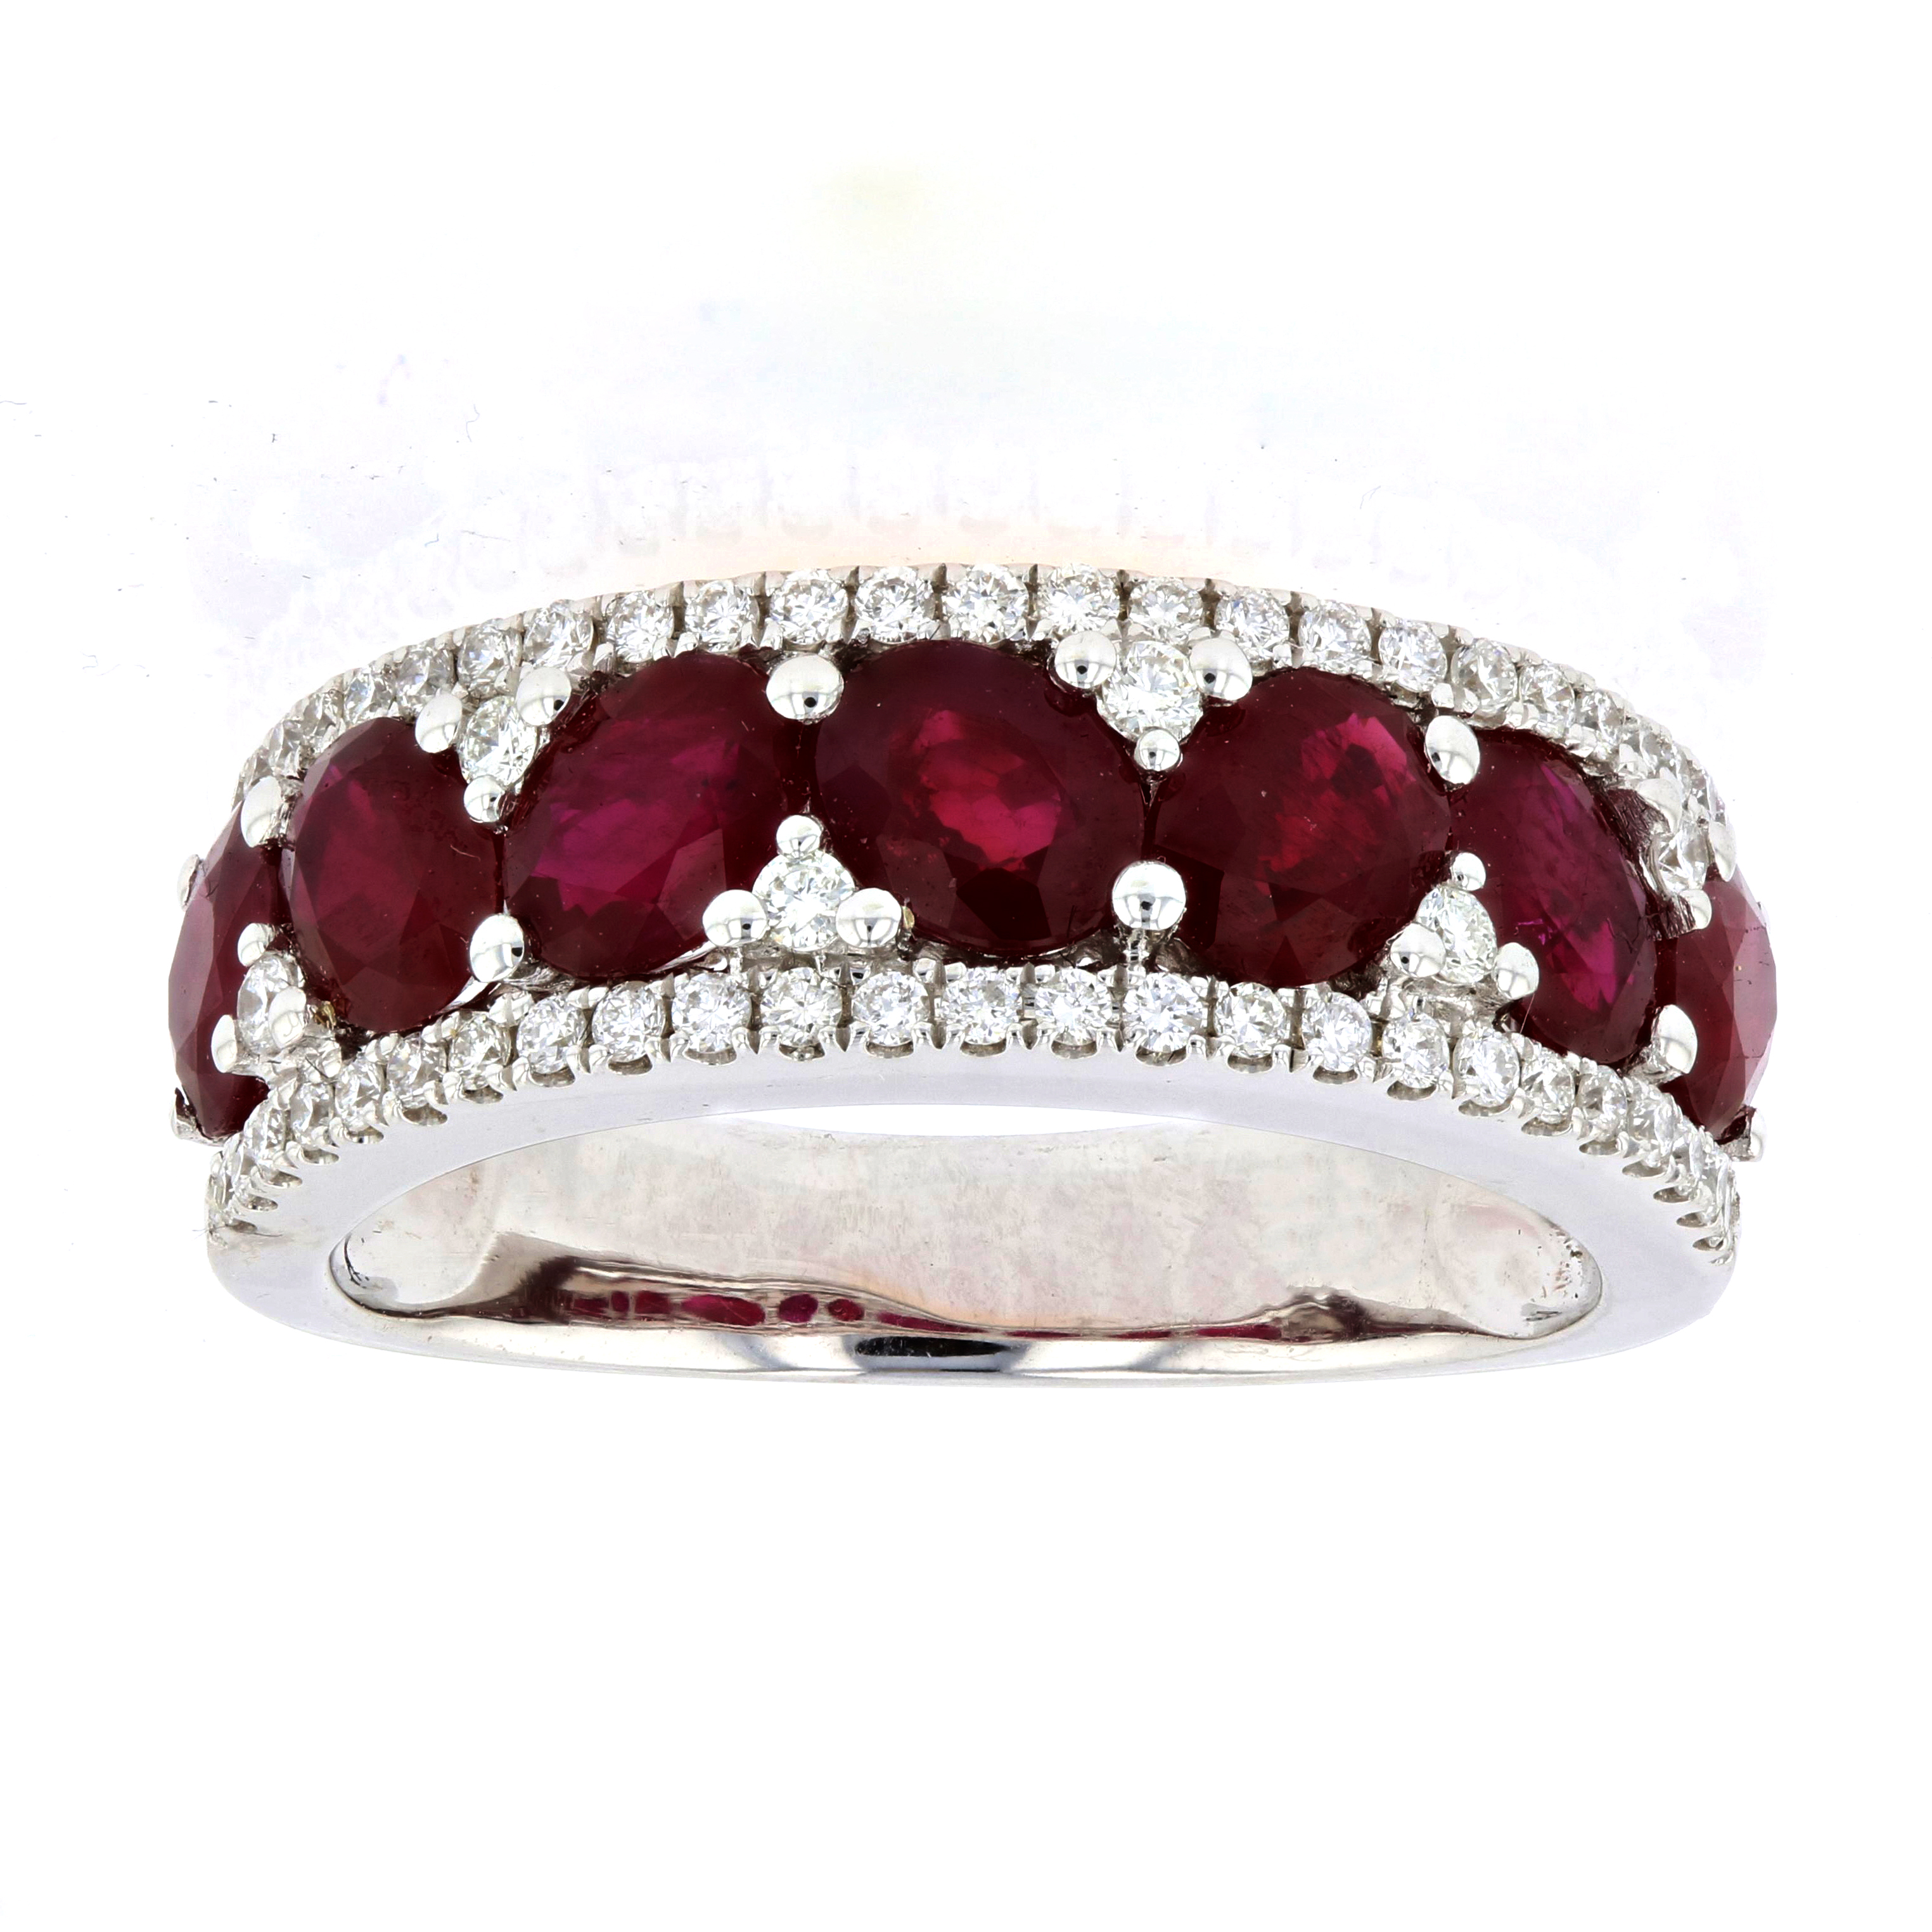 View 3.04ctw Diamond and Ruby RIng in 18k White Gold